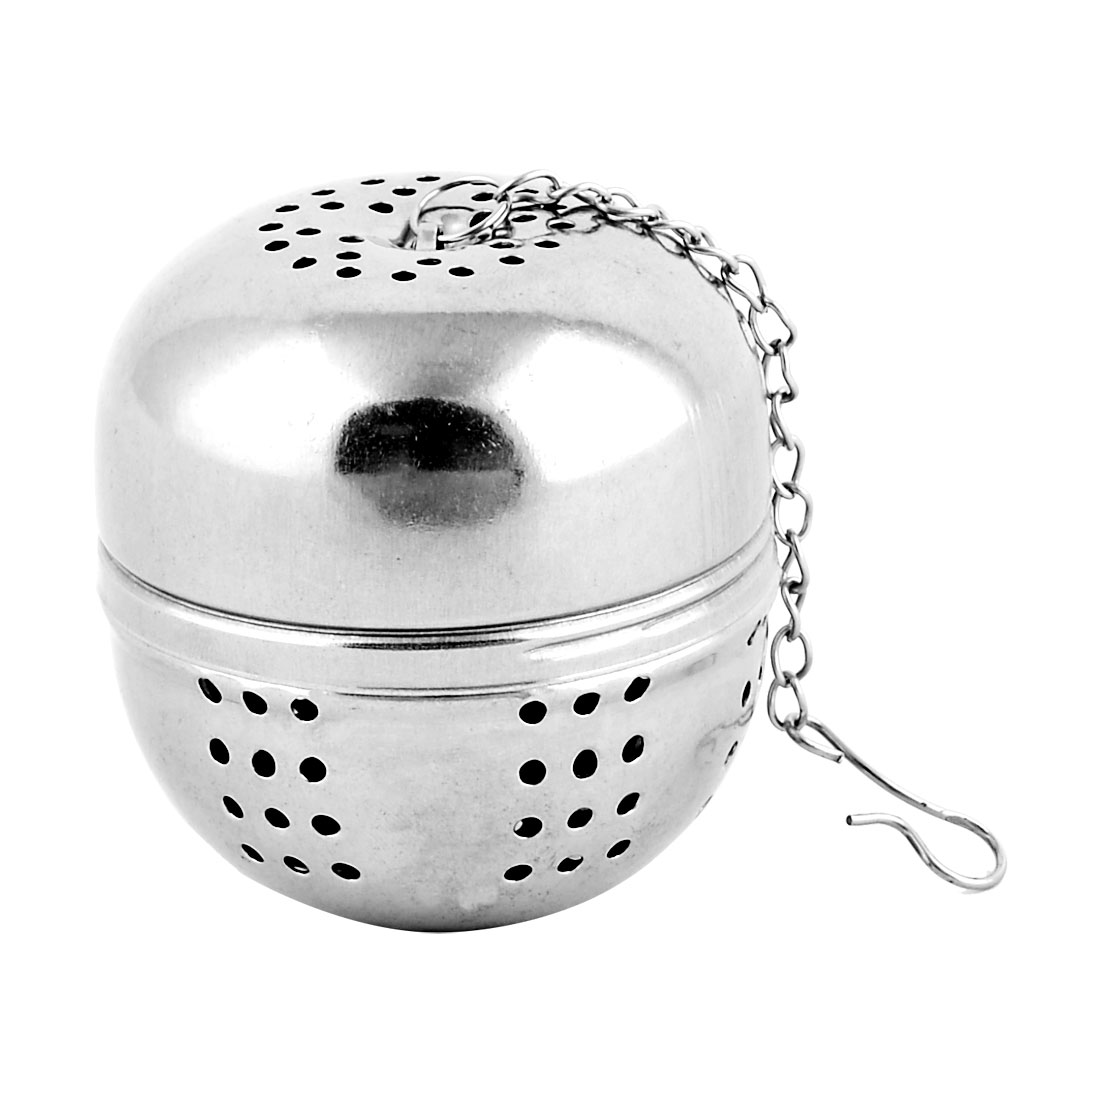 Unique BargainsHousehold Stainless Steel Tea Leaf Spice Ball Strainer Silver Tone 45mm Diameter